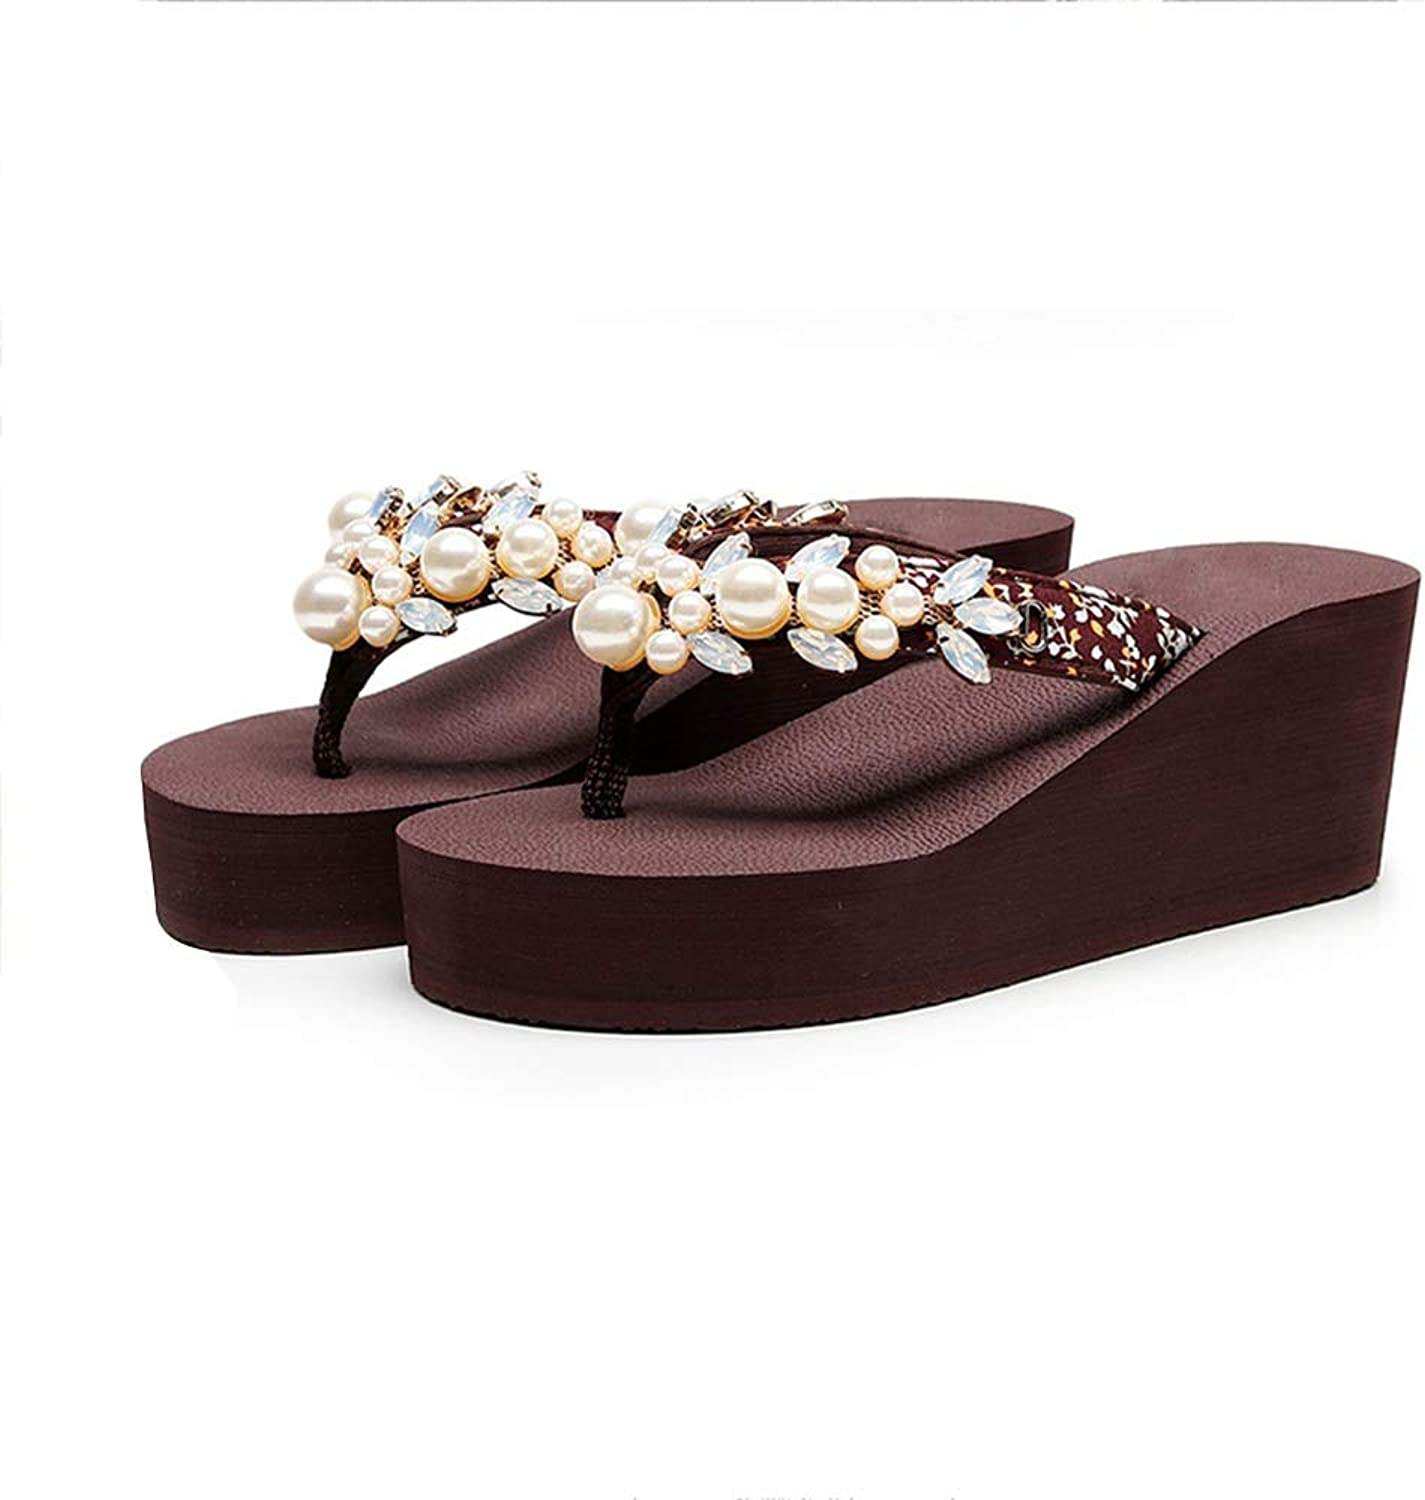 WANGFANG Sandals Women's Slippers, Summer Pearl Chain Non-Slip Platform Thong Style Sandals Wedge Slippers Beach Slippers, Three colors (color   Brown, Size   US6 EU37 UK4 MX3.5 CN37)